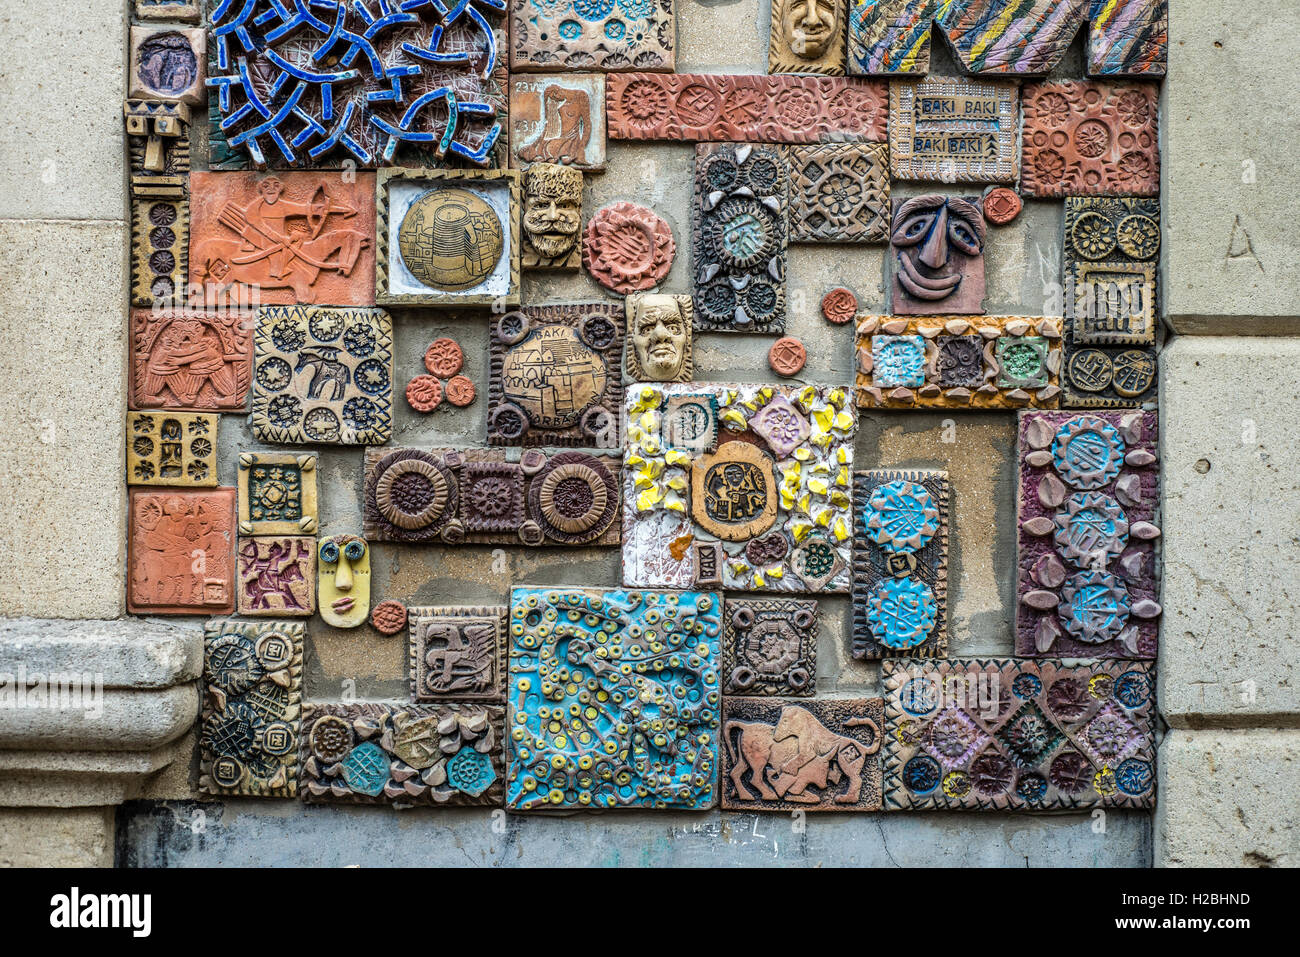 A wall decorated with handmade tiles at the Old City of Baku, Azerbaijan - Stock Image